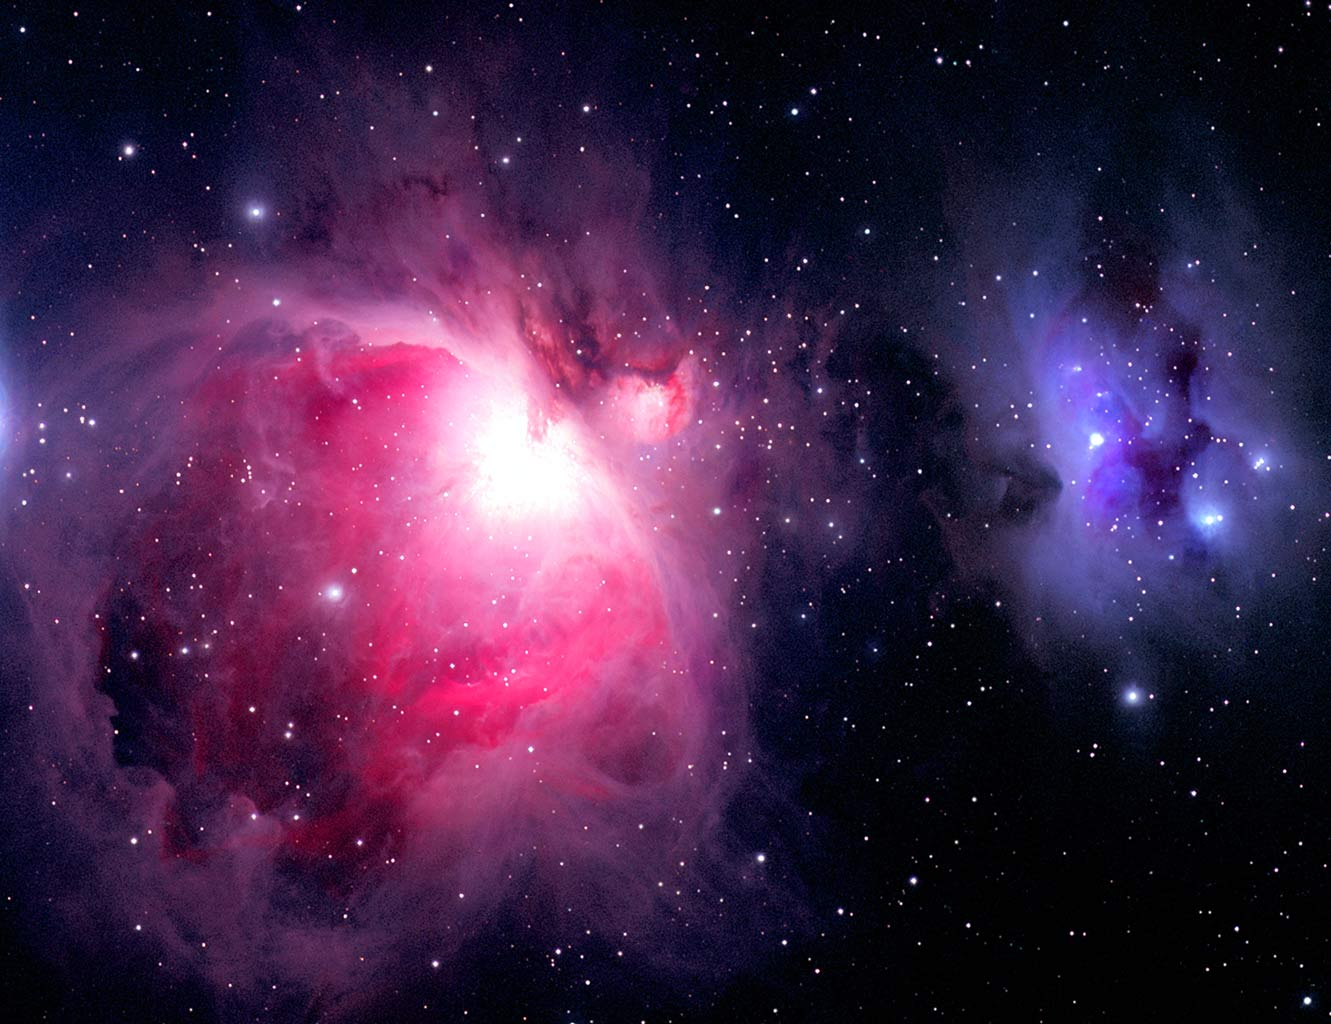 nebula hd wallpaper optical illusions - photo #15